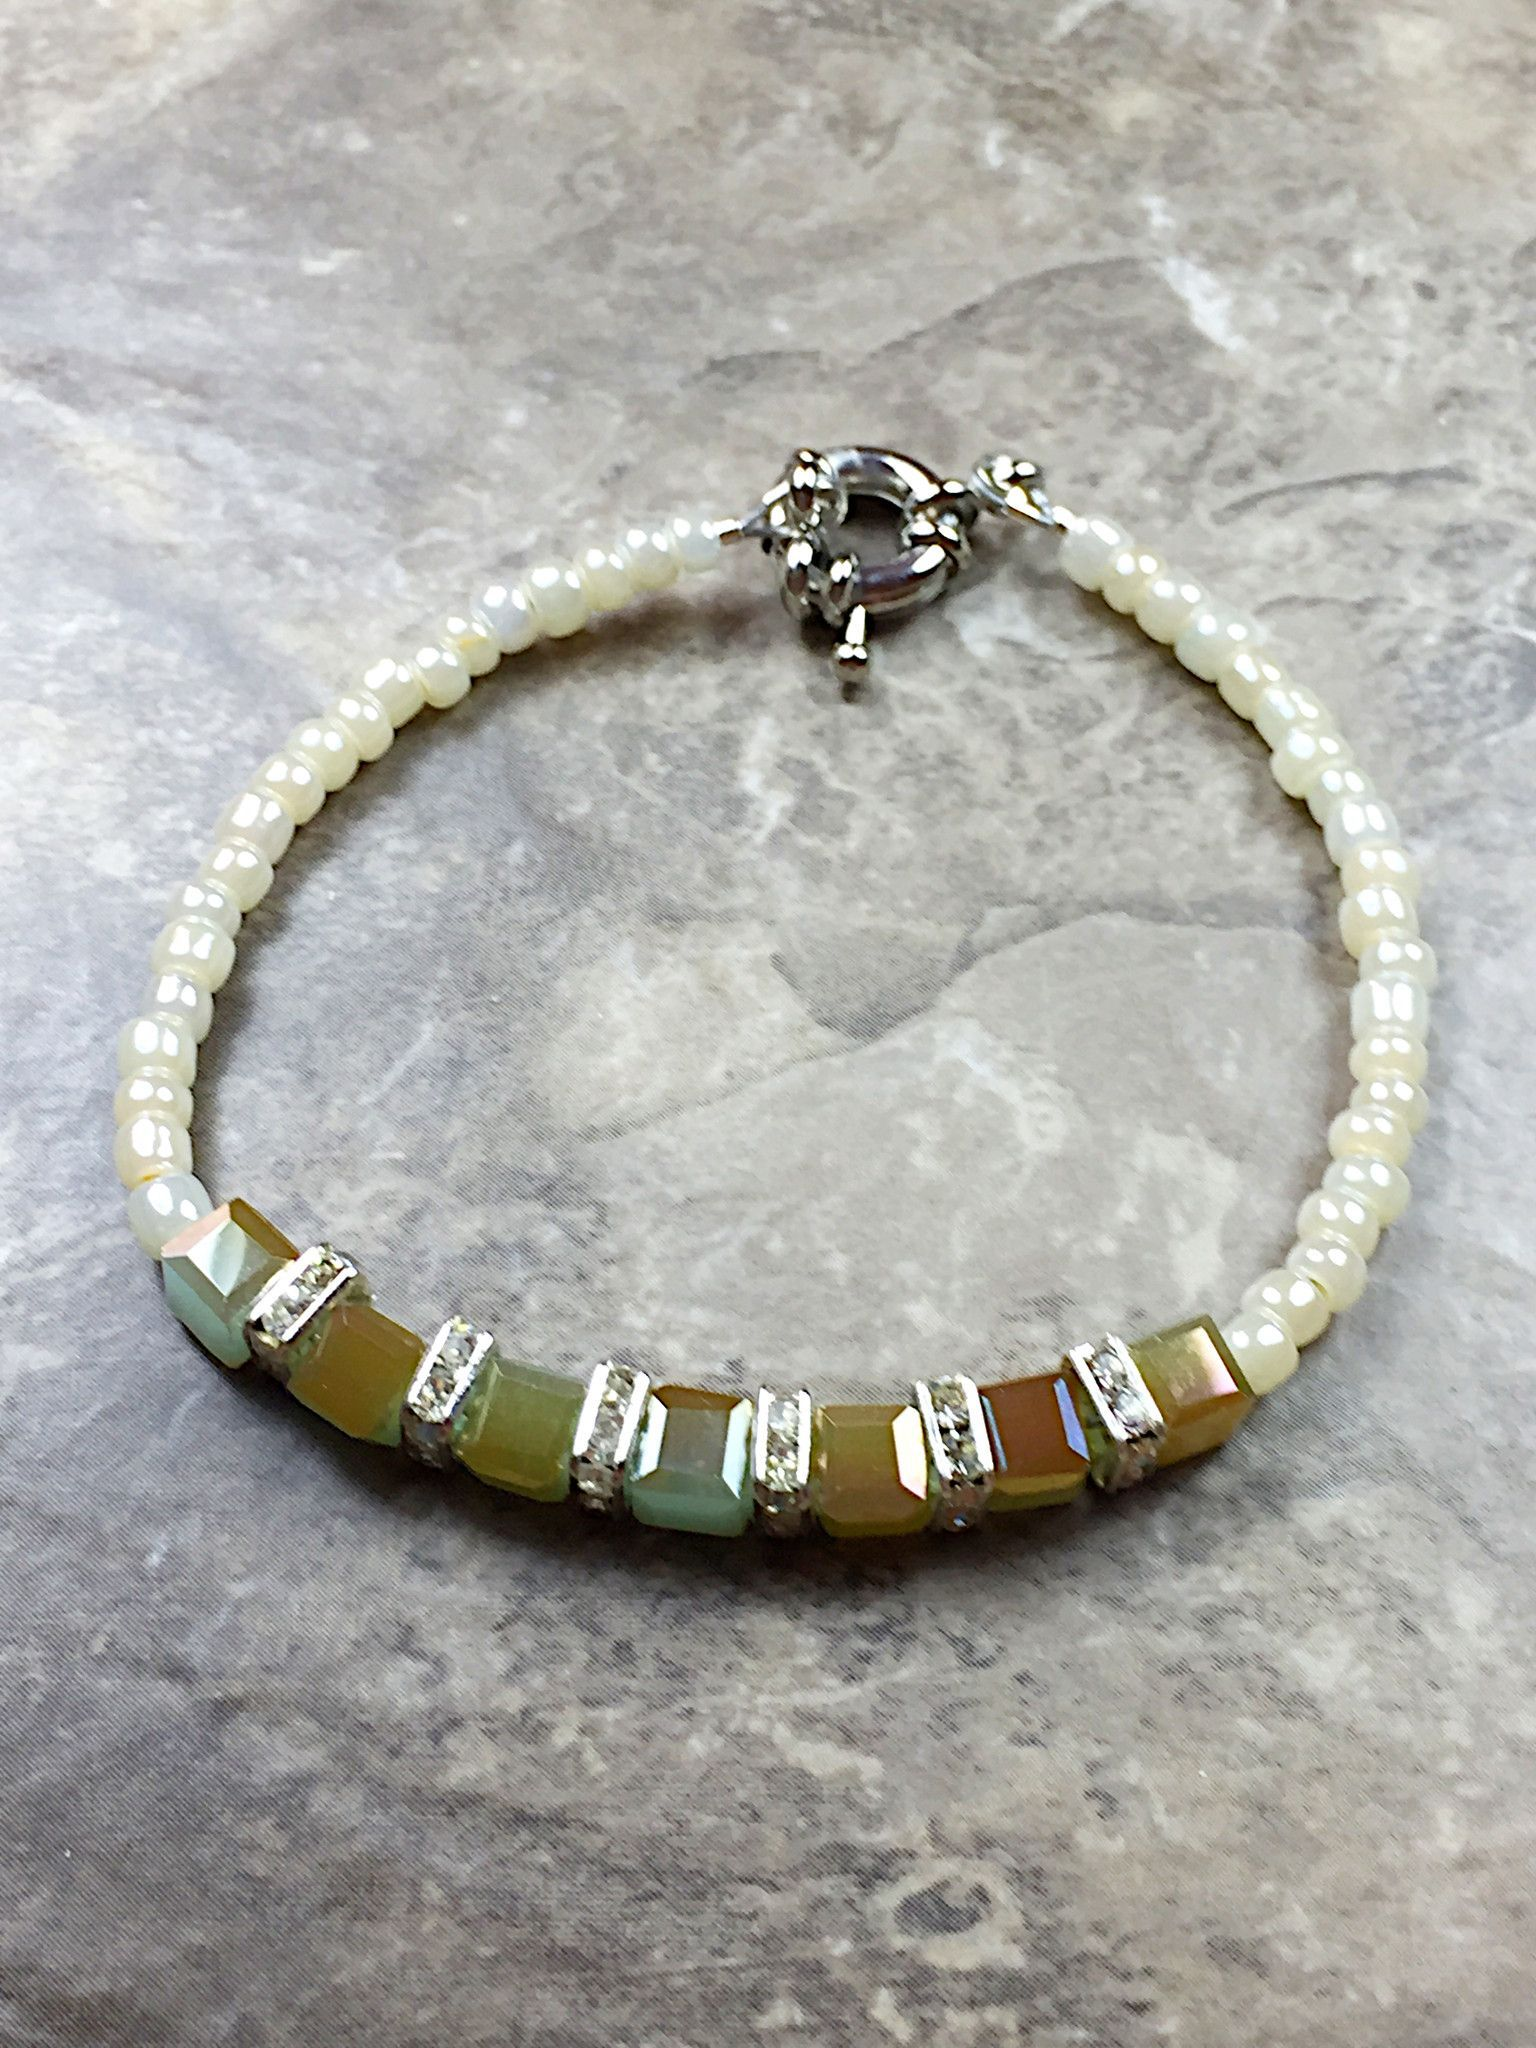 Green multi color cube bracelet made with a green cube crystal and